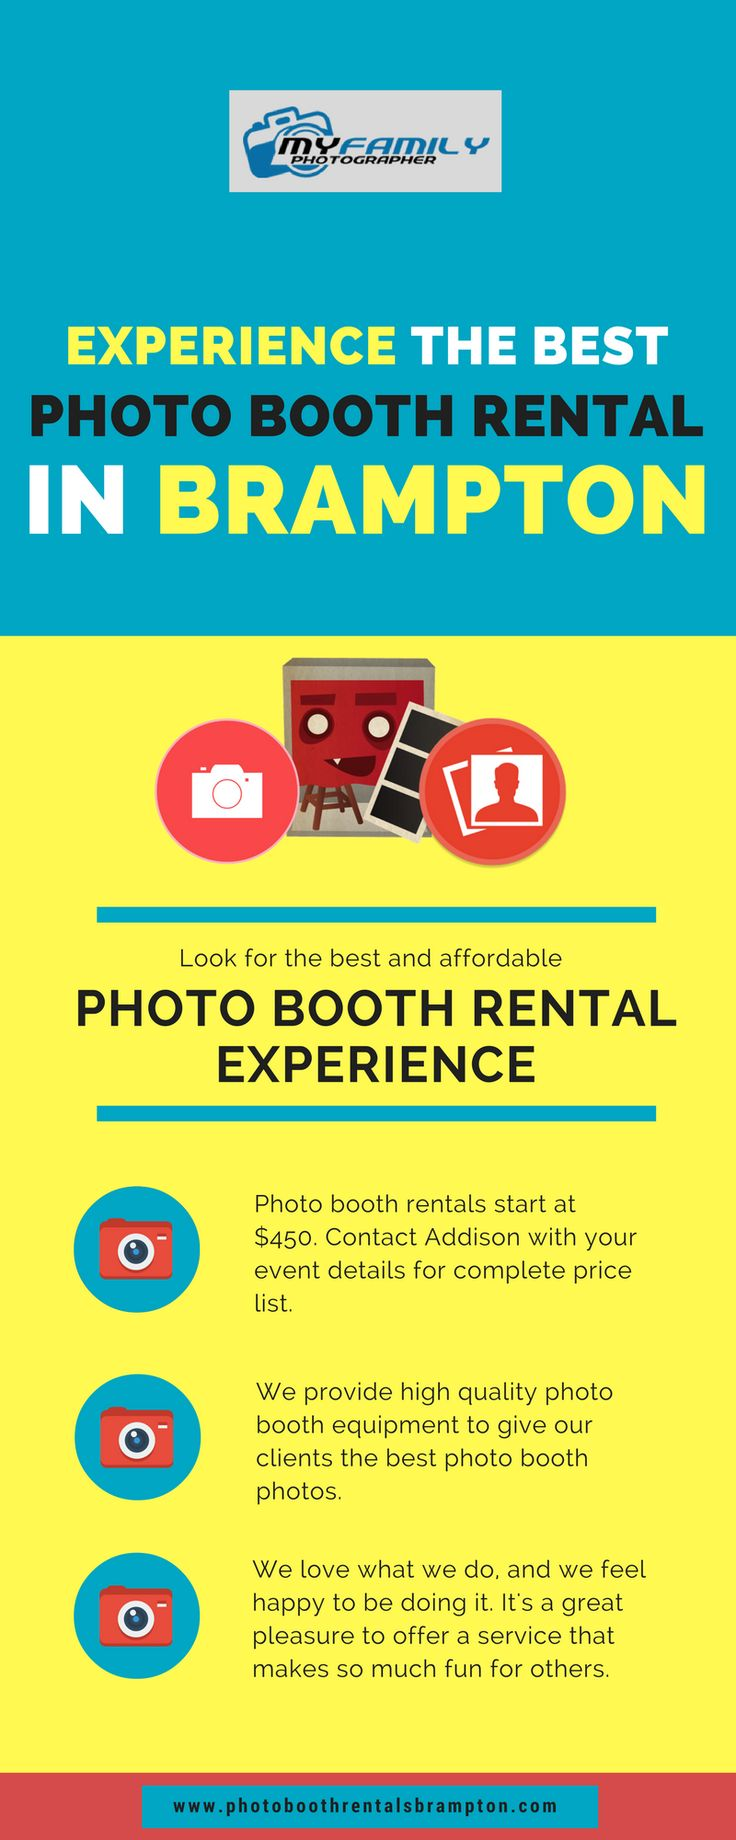 Experience the Best Photo Booth Rental in Brampton